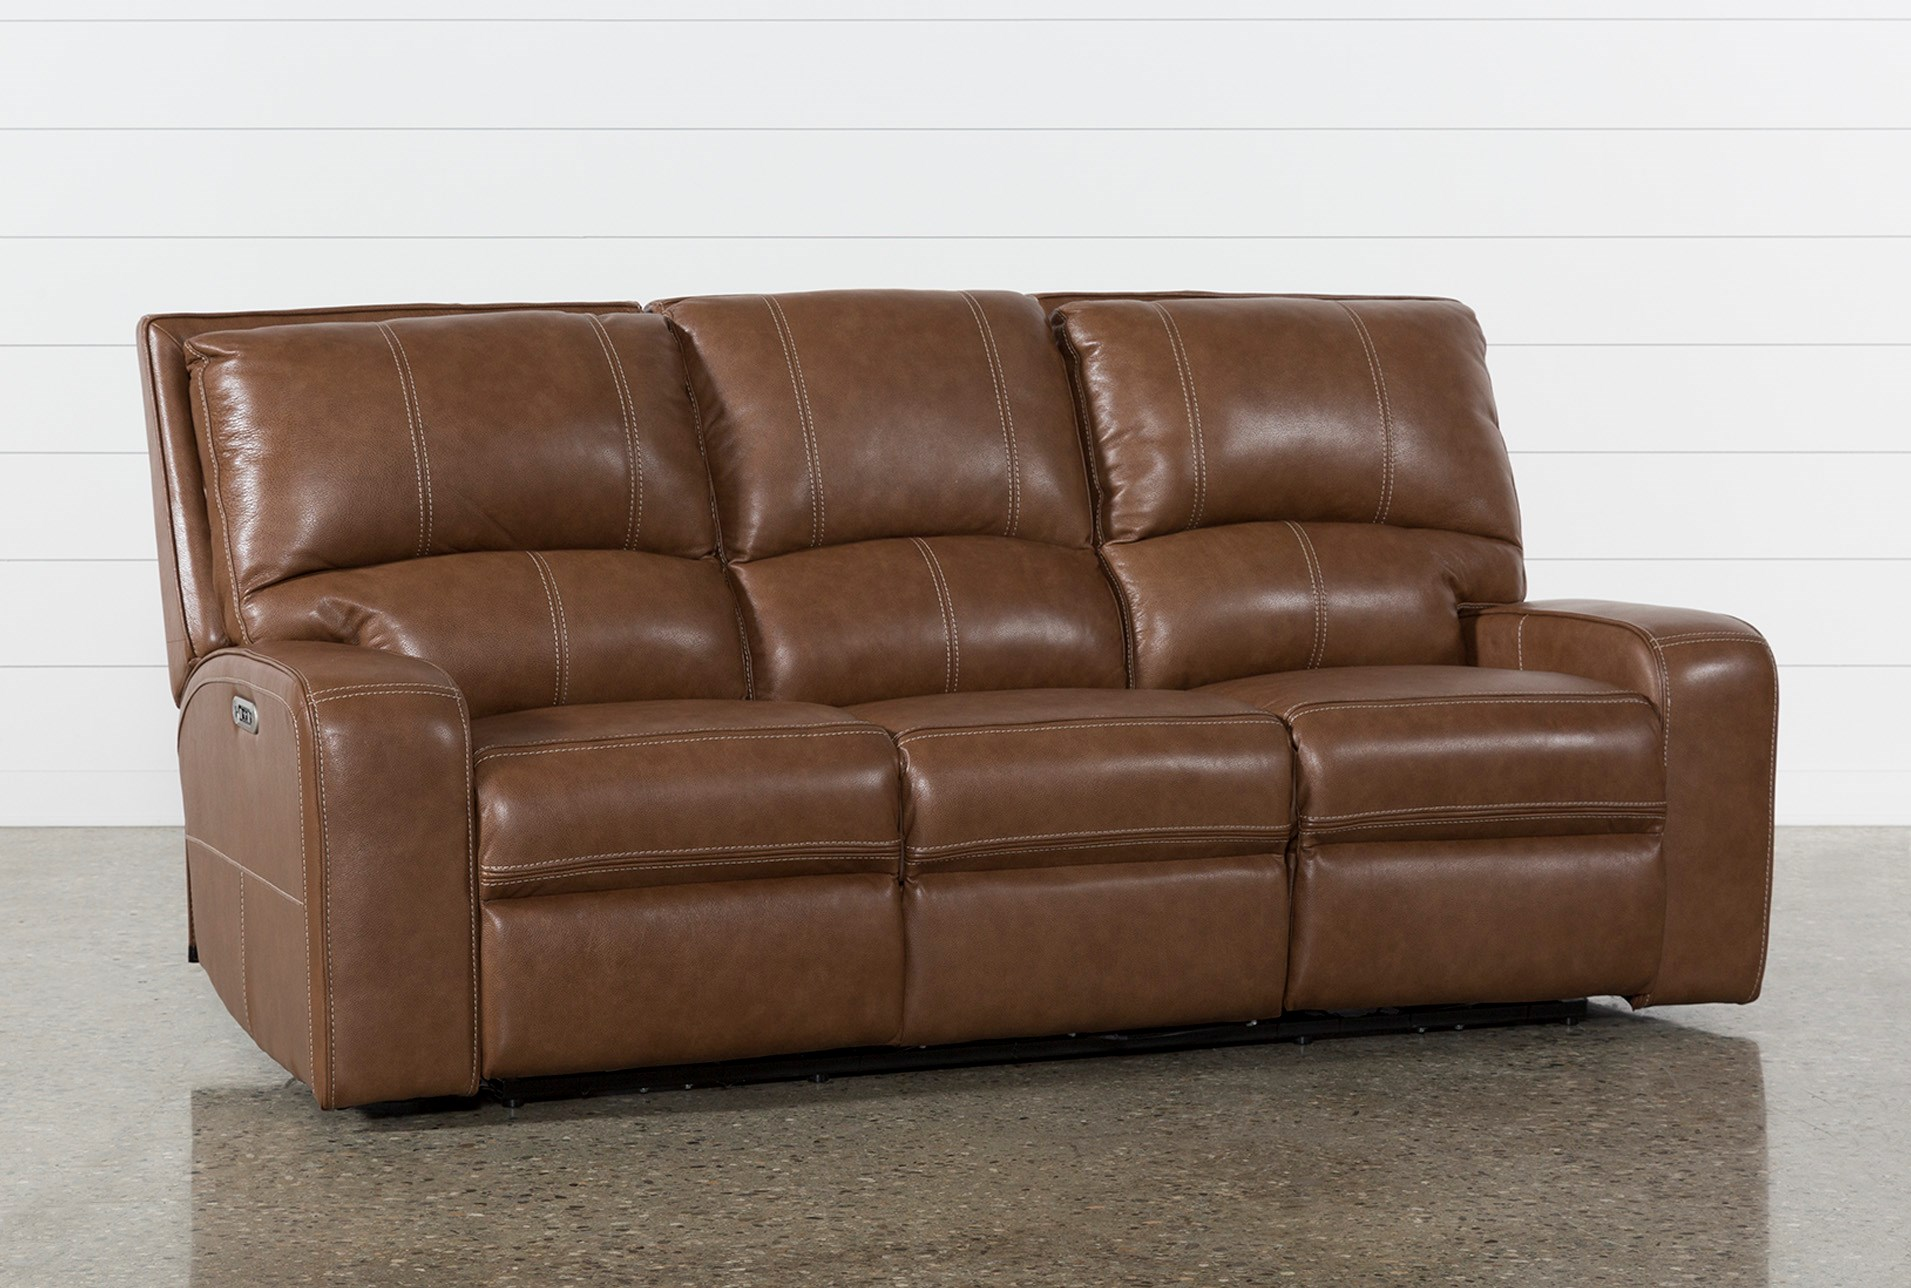 products contemporary living hills rooms home leather auburn brown sofas sofa crawford reclining recliner cindy